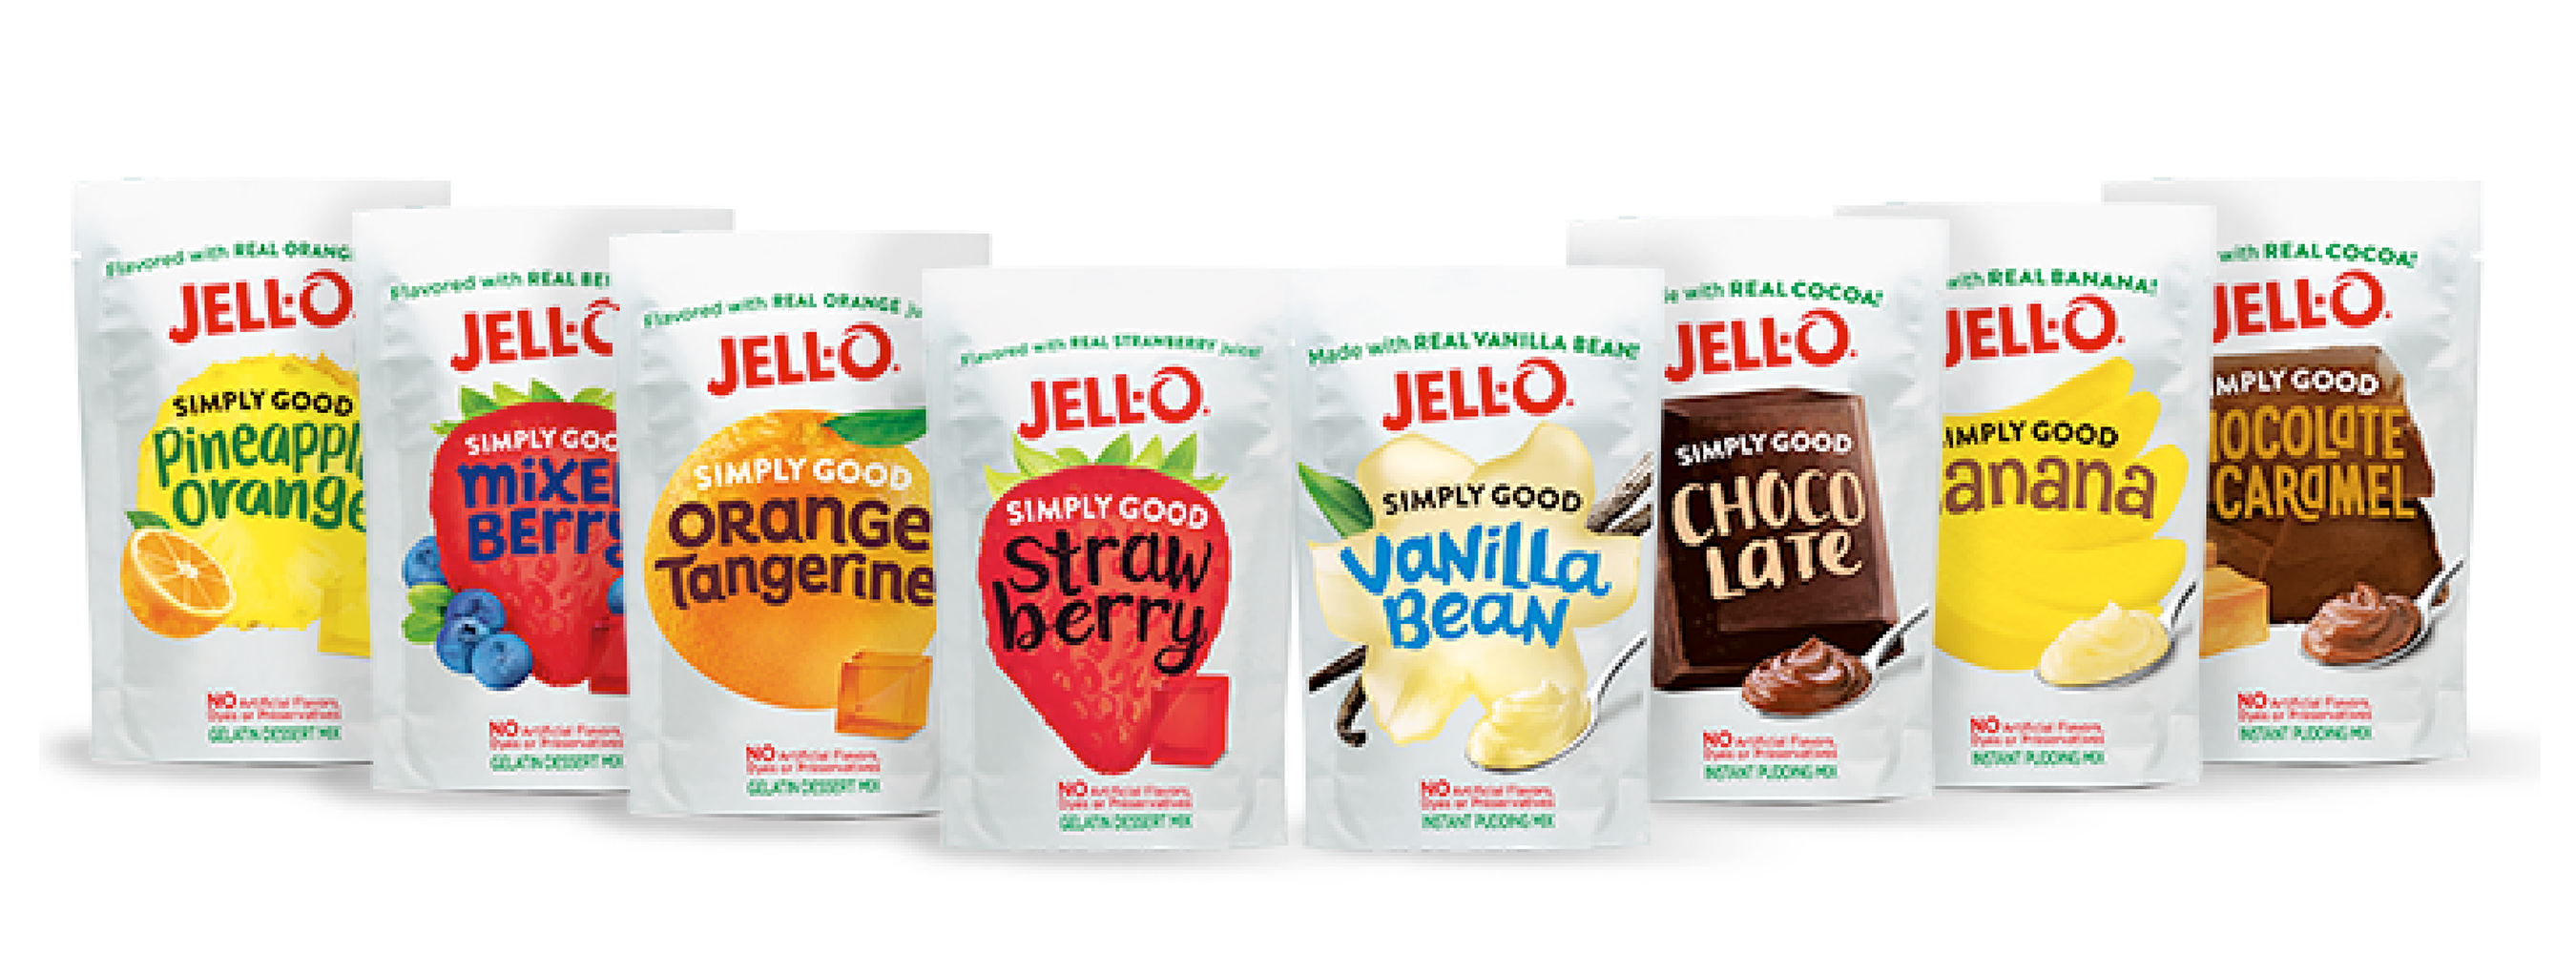 Made with real banana, cocoa and vanilla bean and flavored with real fruit juices. The full line of JELL-O SIMPLY GOOD contains no artificial dyes, flavors or preservatives.